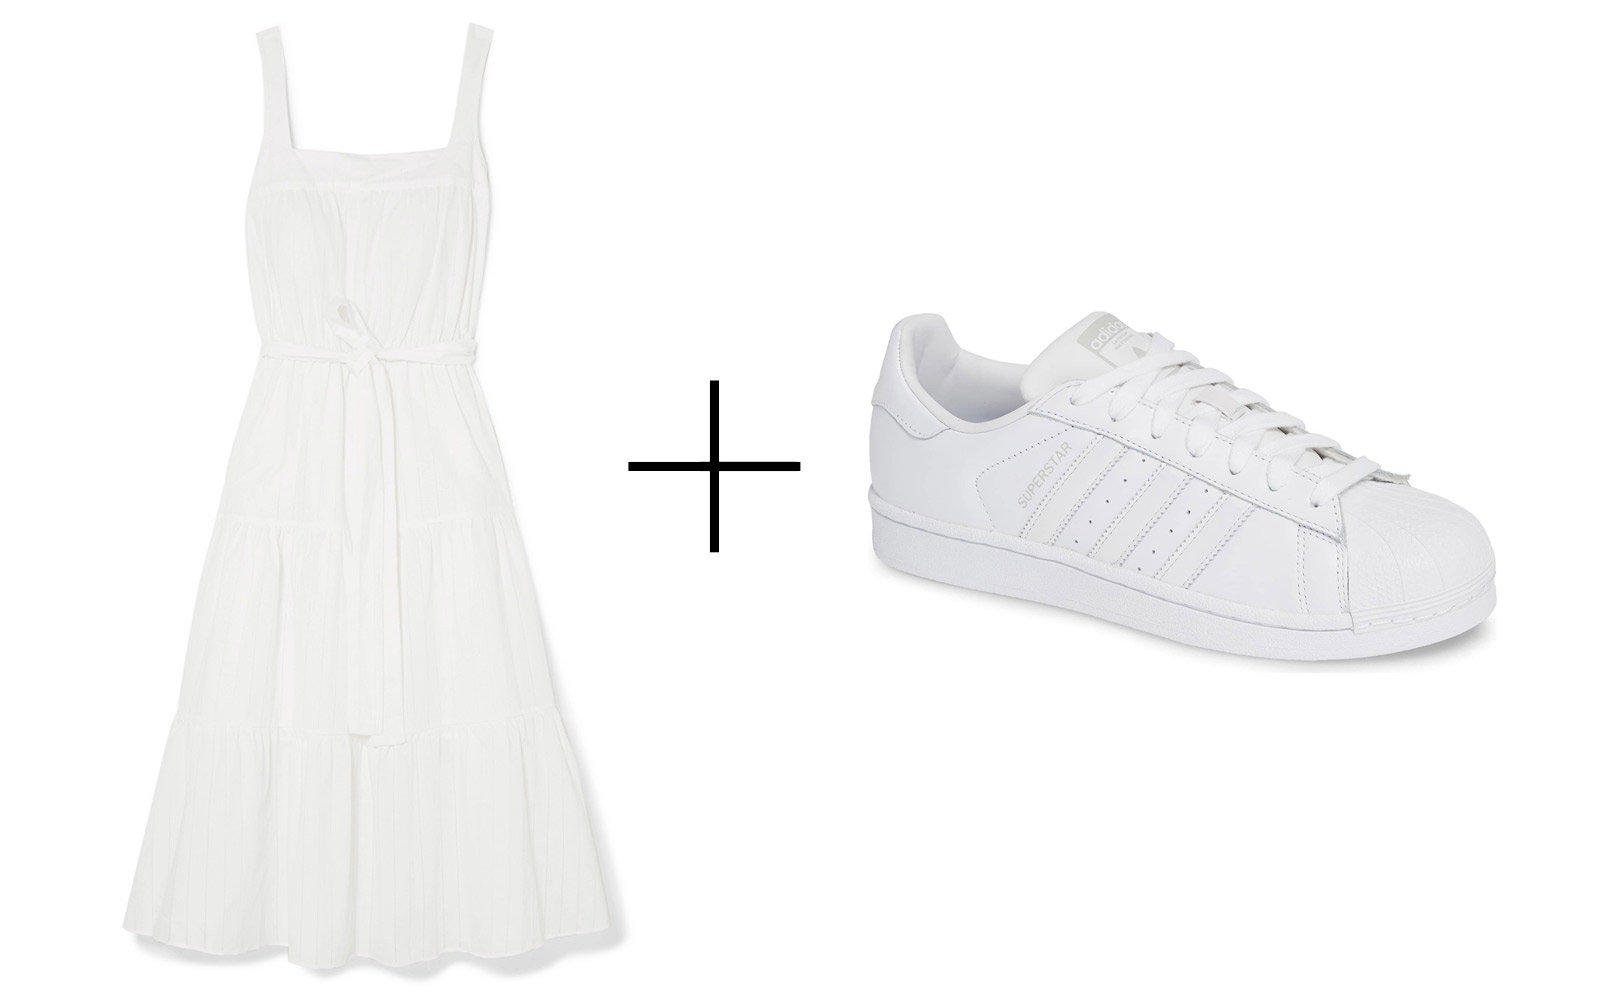 Michael Michael Kors Belted Midi Dress & Adidas 'Superstar' Sneakers